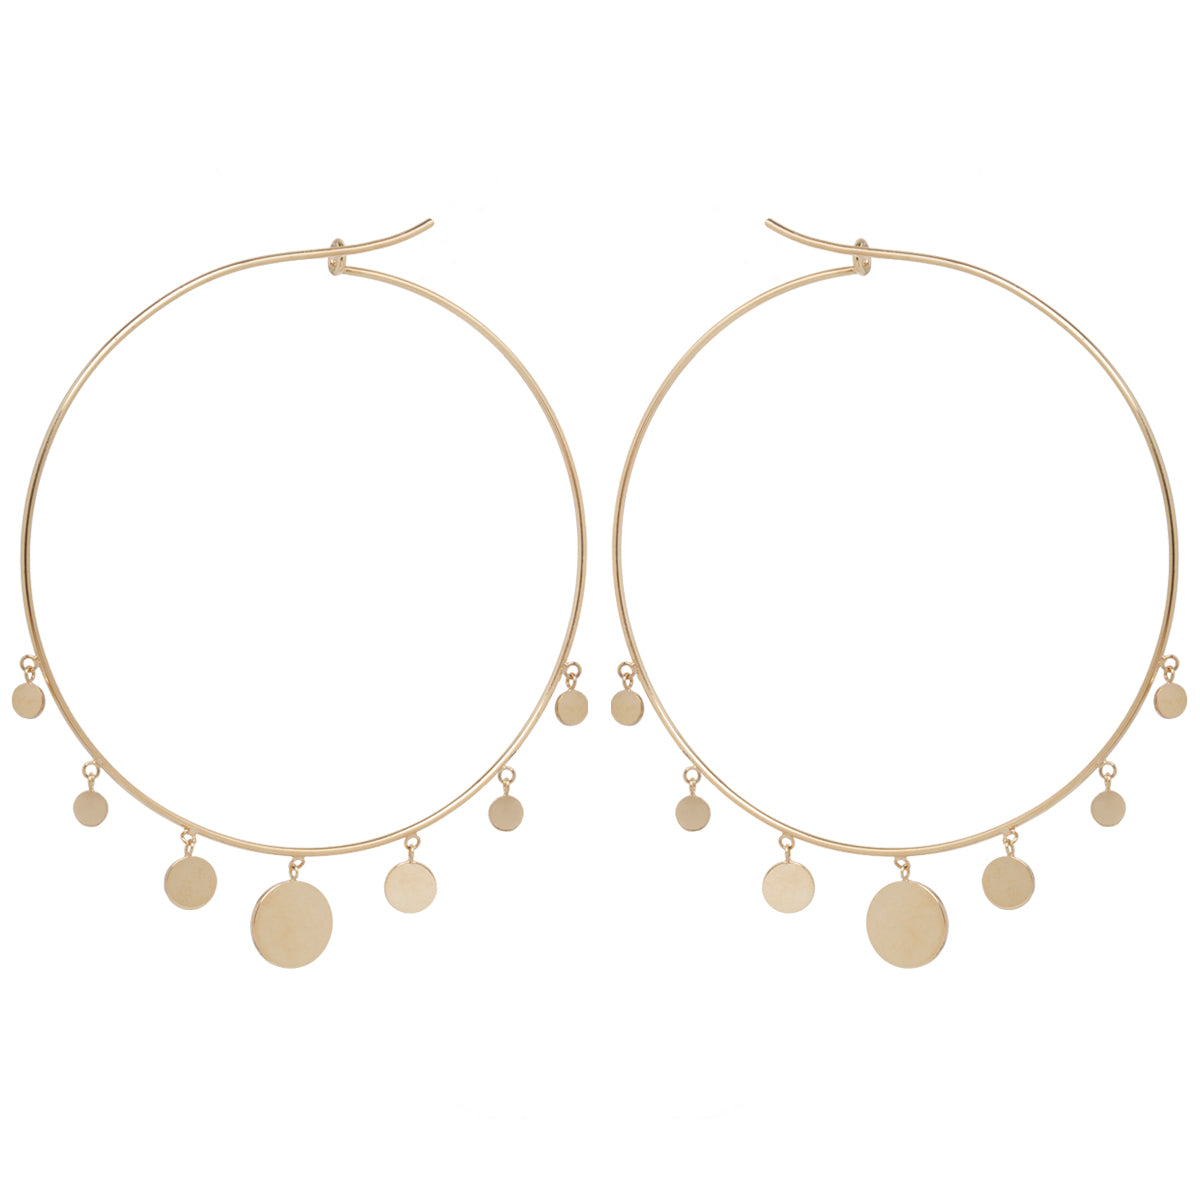 14k 7 dangling graduated discs extra large hoops